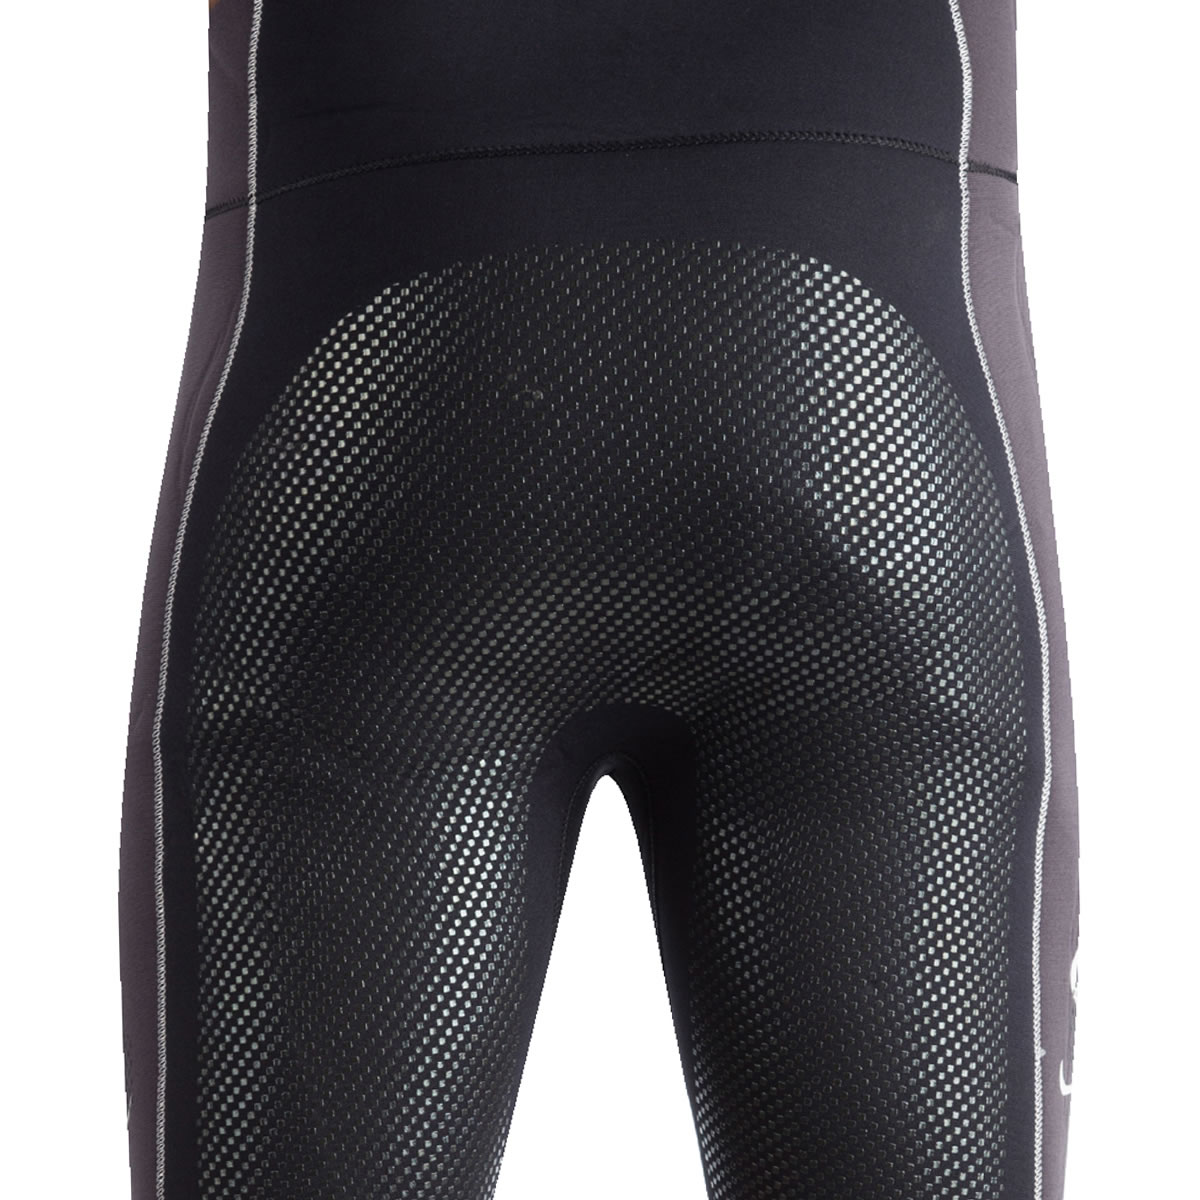 3/4 Length 3mm Neoprene Wetsuit Strides